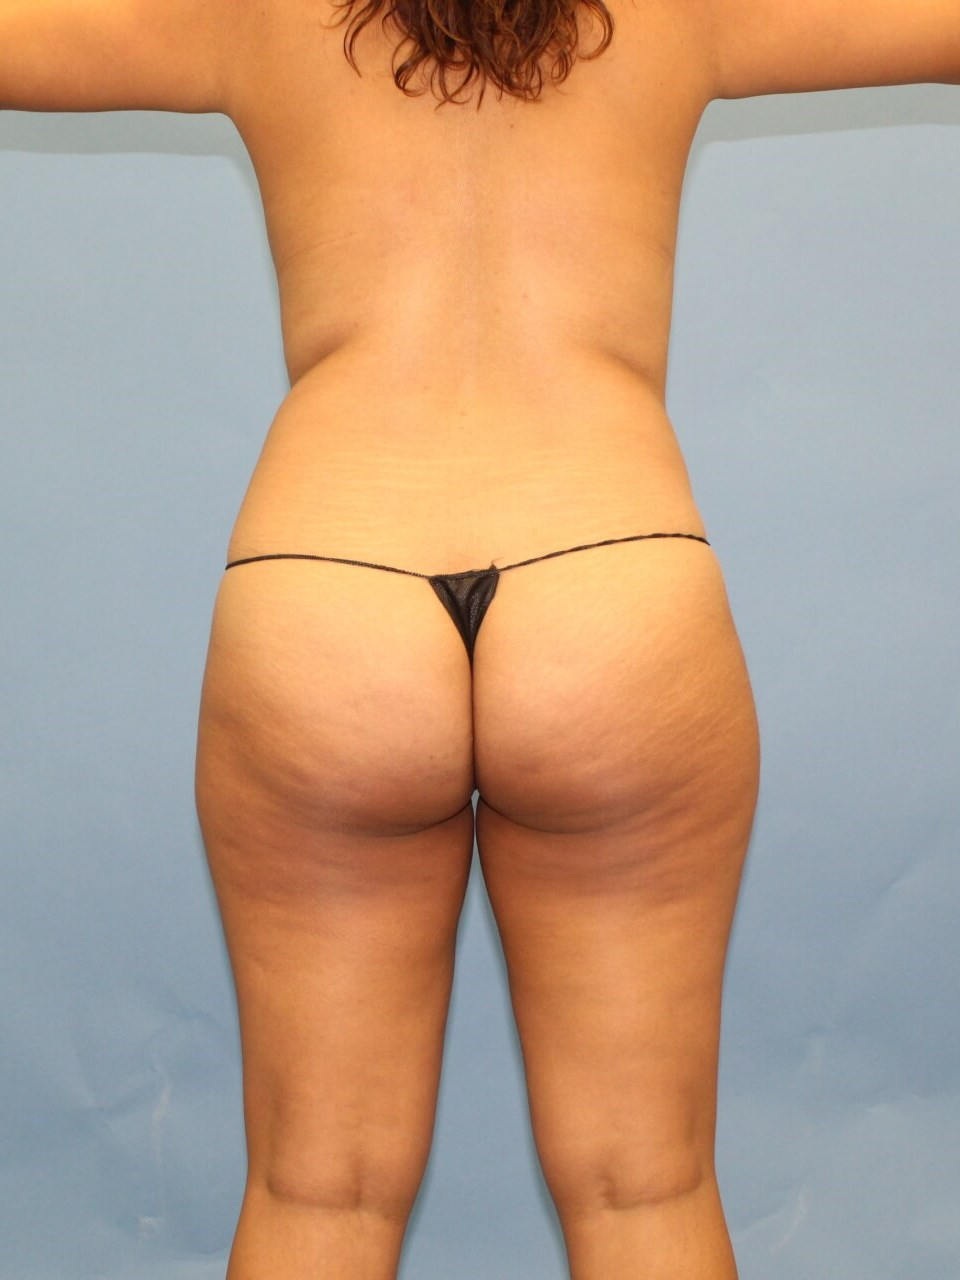 Liposuction and BBL Before